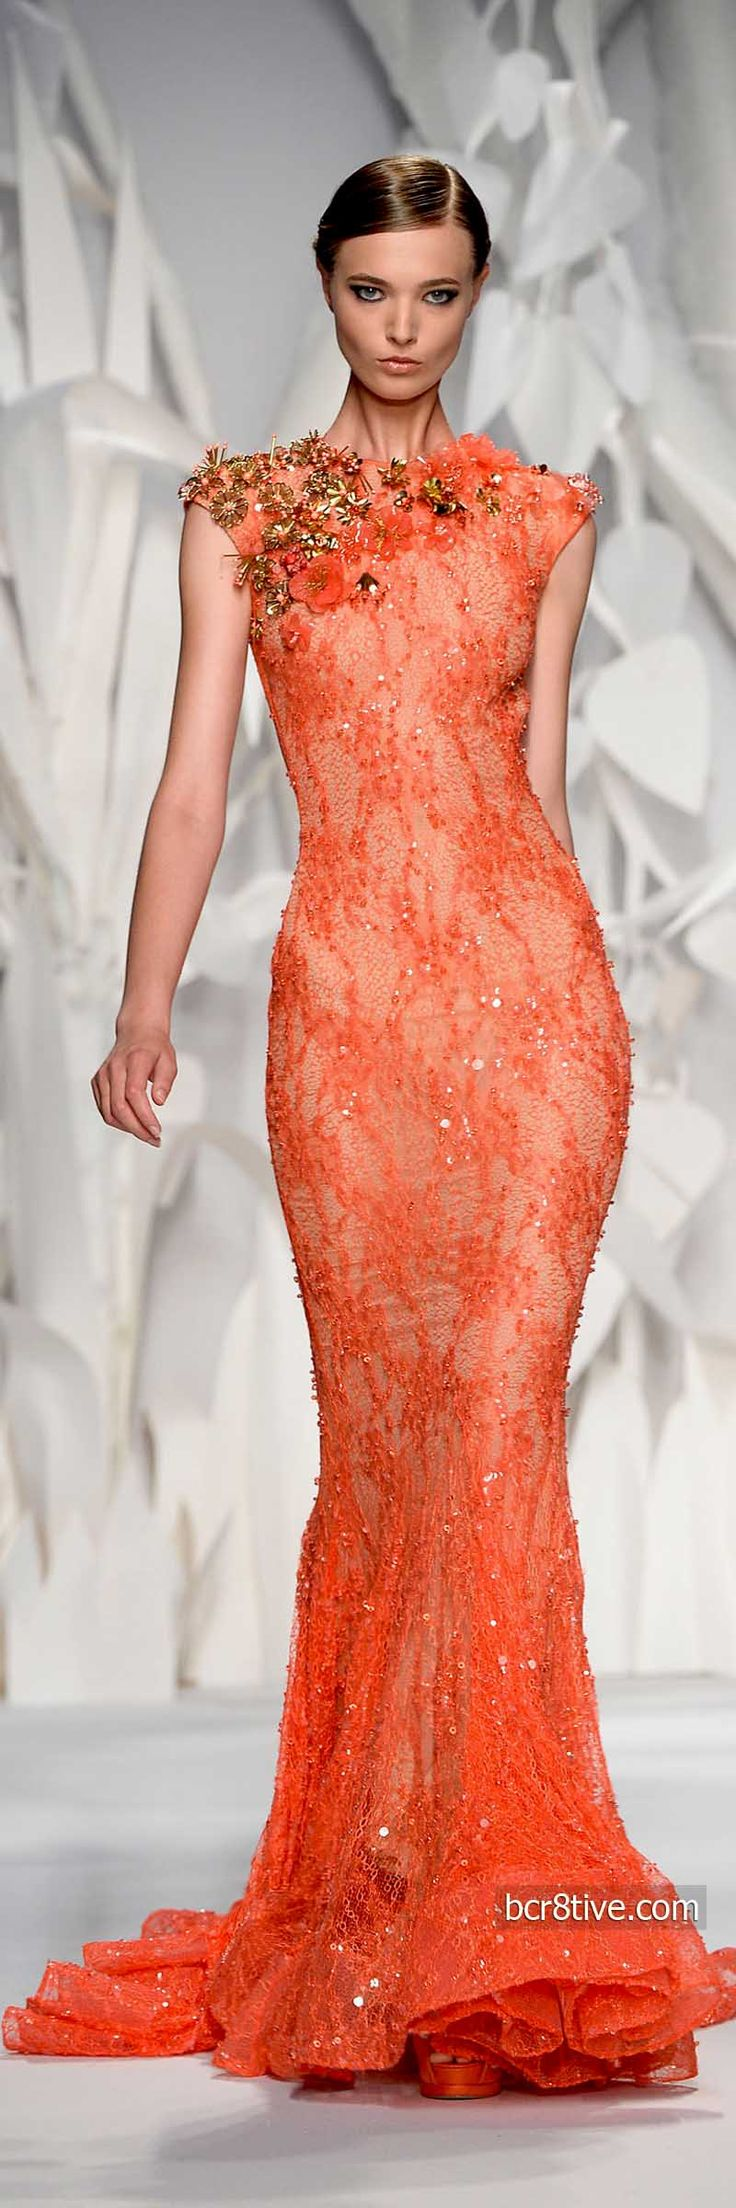 Abed Mahfouz Fall Winter 2014 Haute Couture Collection